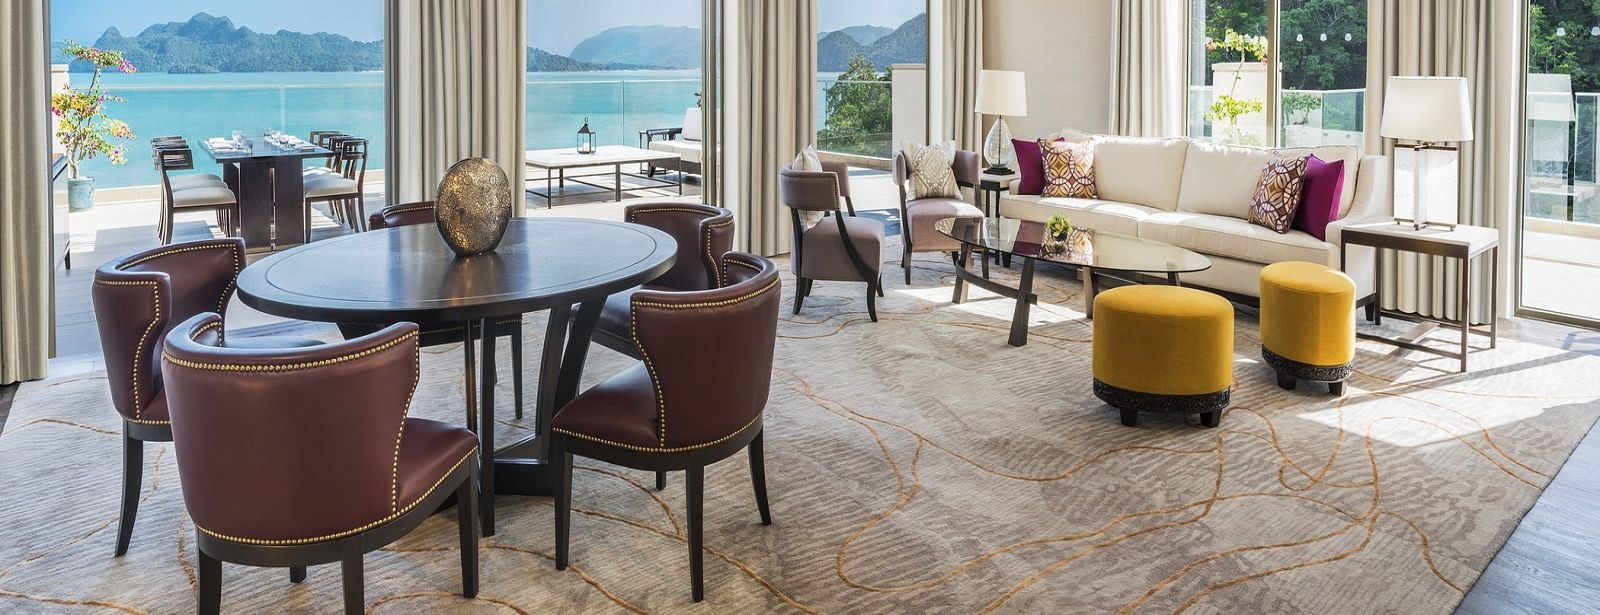 Penthouse Suite | The St. Regis Langkawi